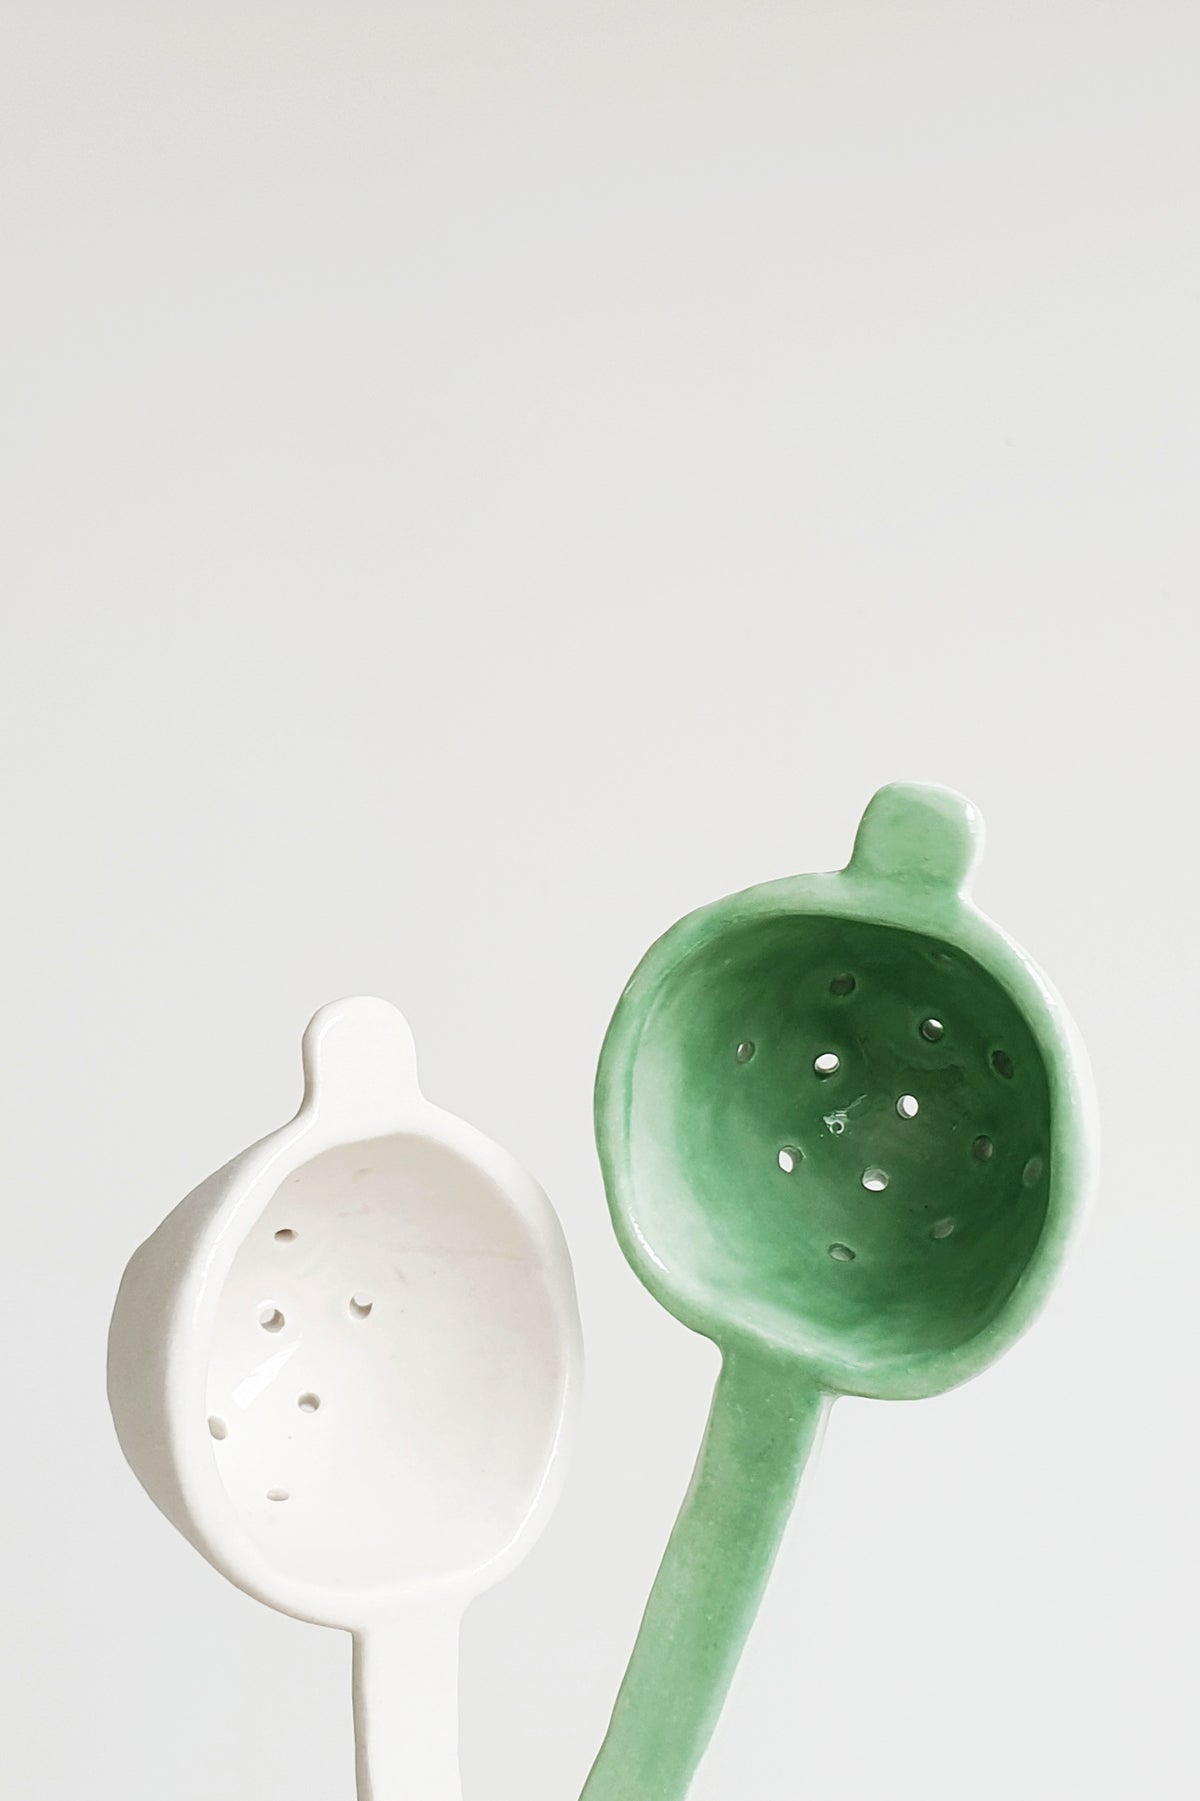 Green Clay Tea Strainer Health foods The Fashion Advocate ethical Australian fashion designer boutique Melbourne sustainable clothes